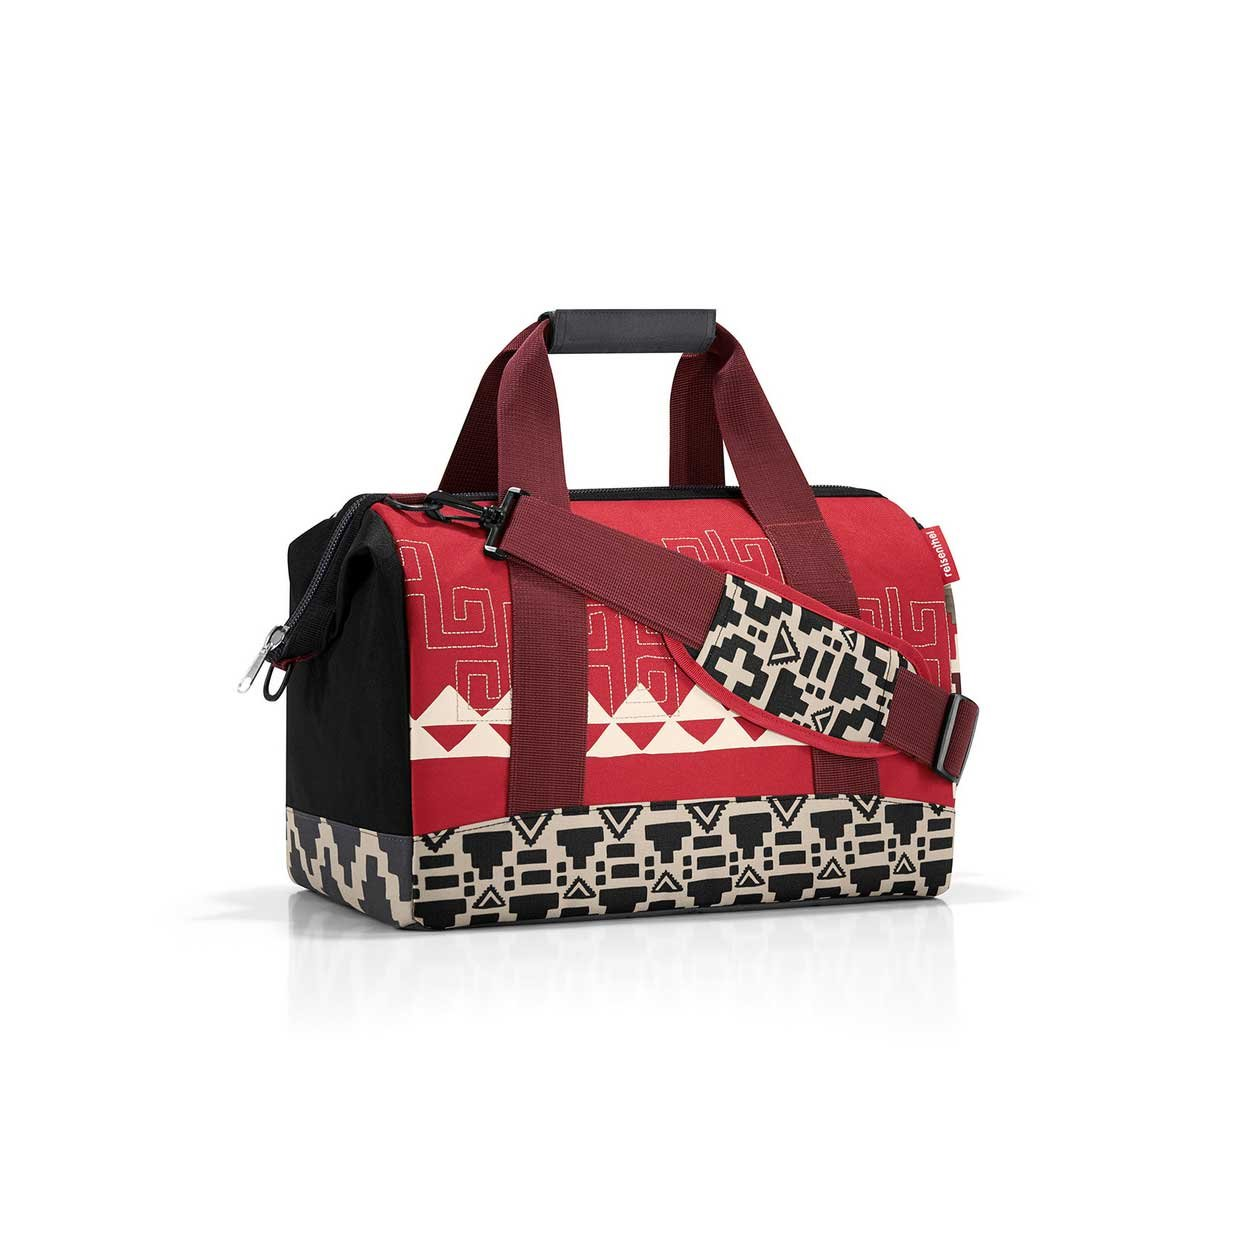 6ea2da2e761 MS7035 Reisenthel Allrounder M overnight bag / sports or gym bag - special  edition hopi: Amazon.co.uk: Kitchen & Home